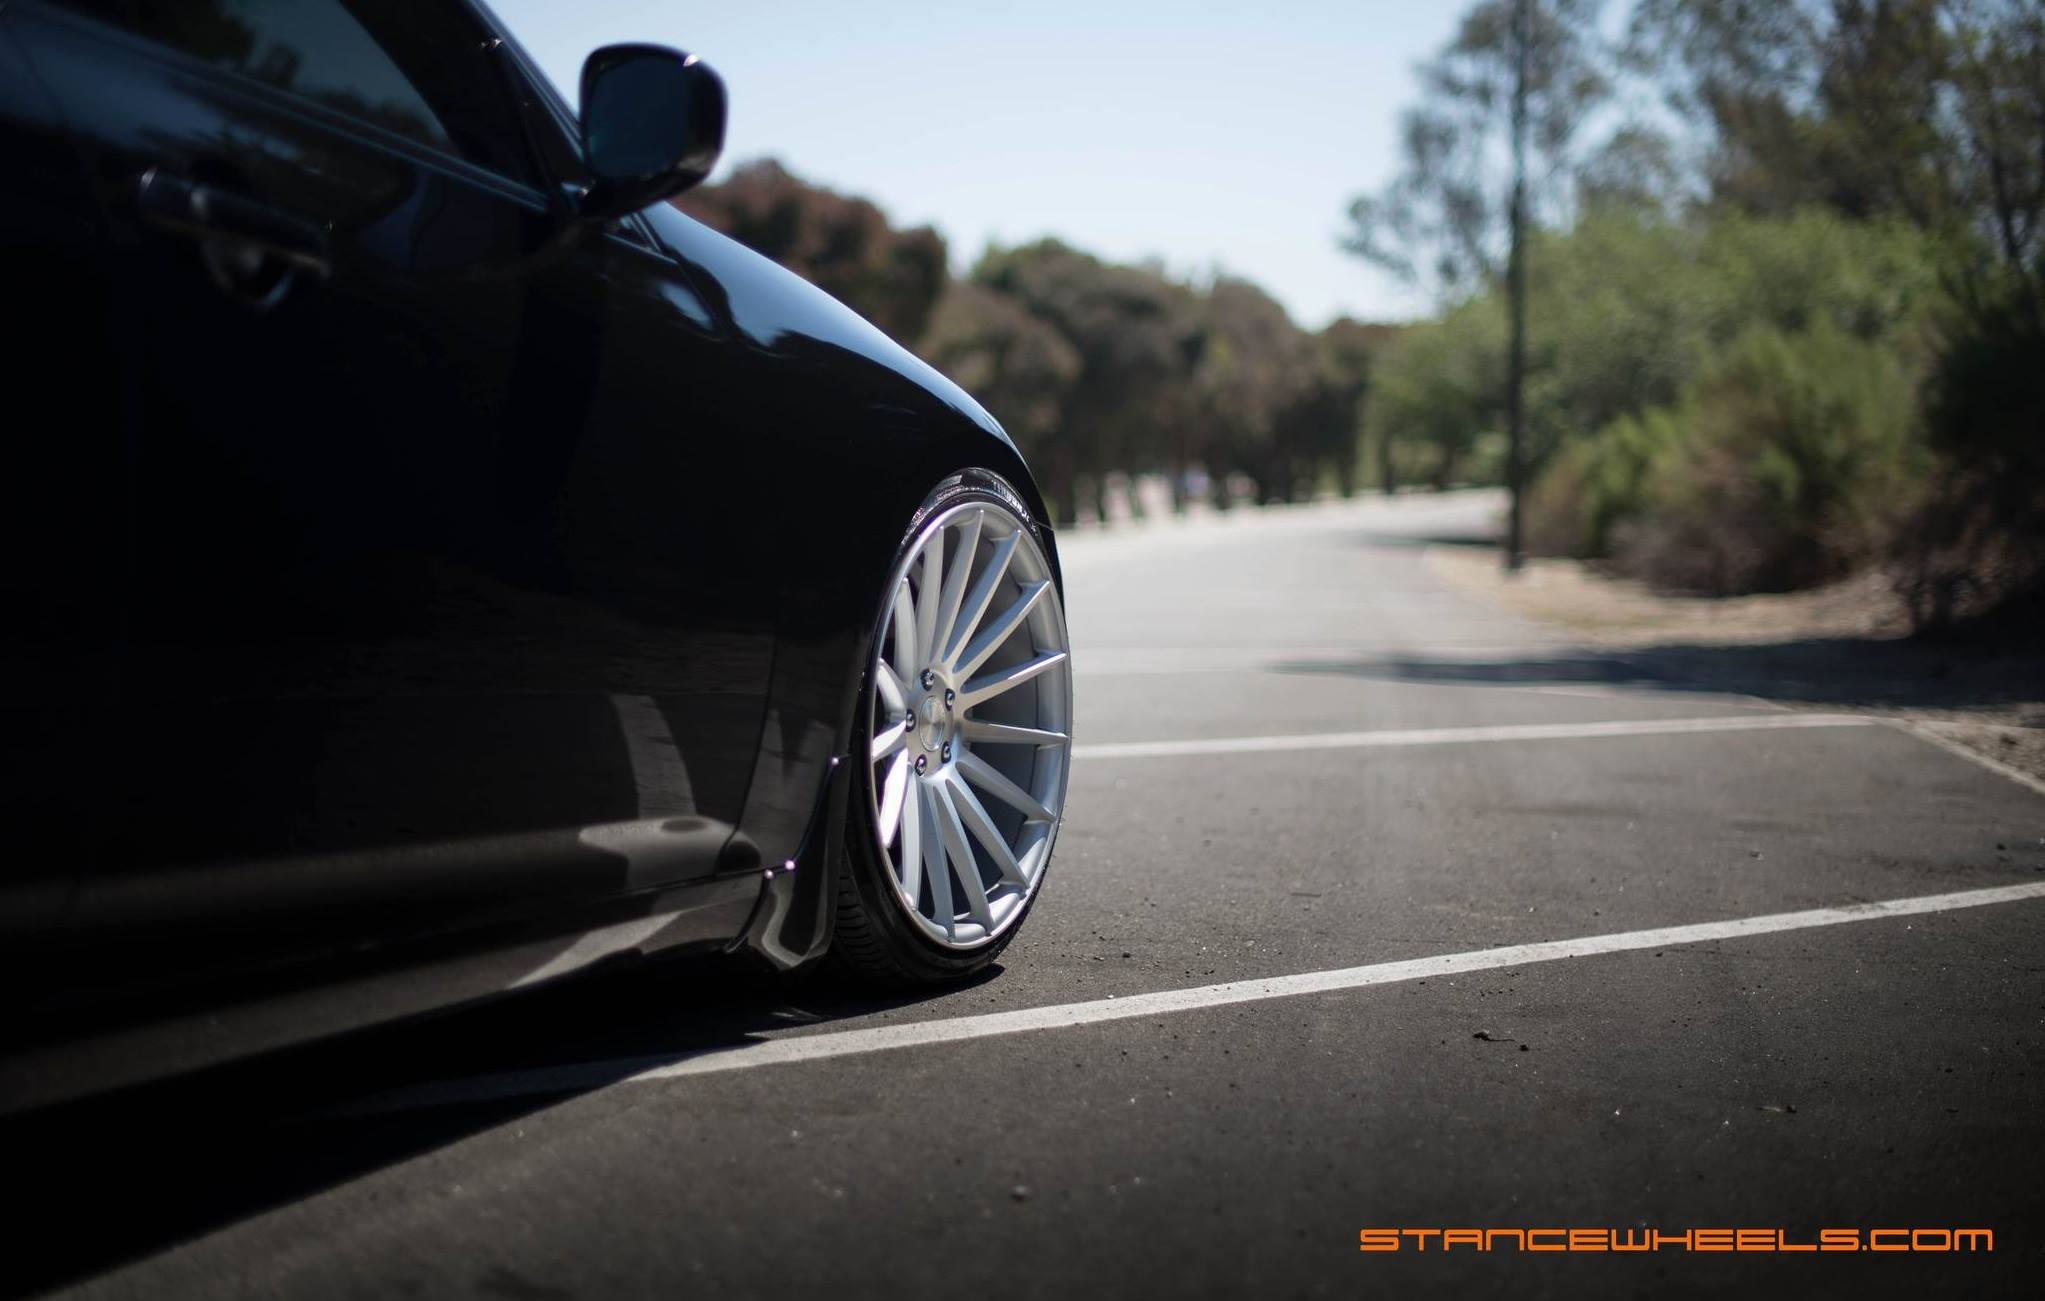 Stance Wheels SC-7 Silver on Infiniti G37